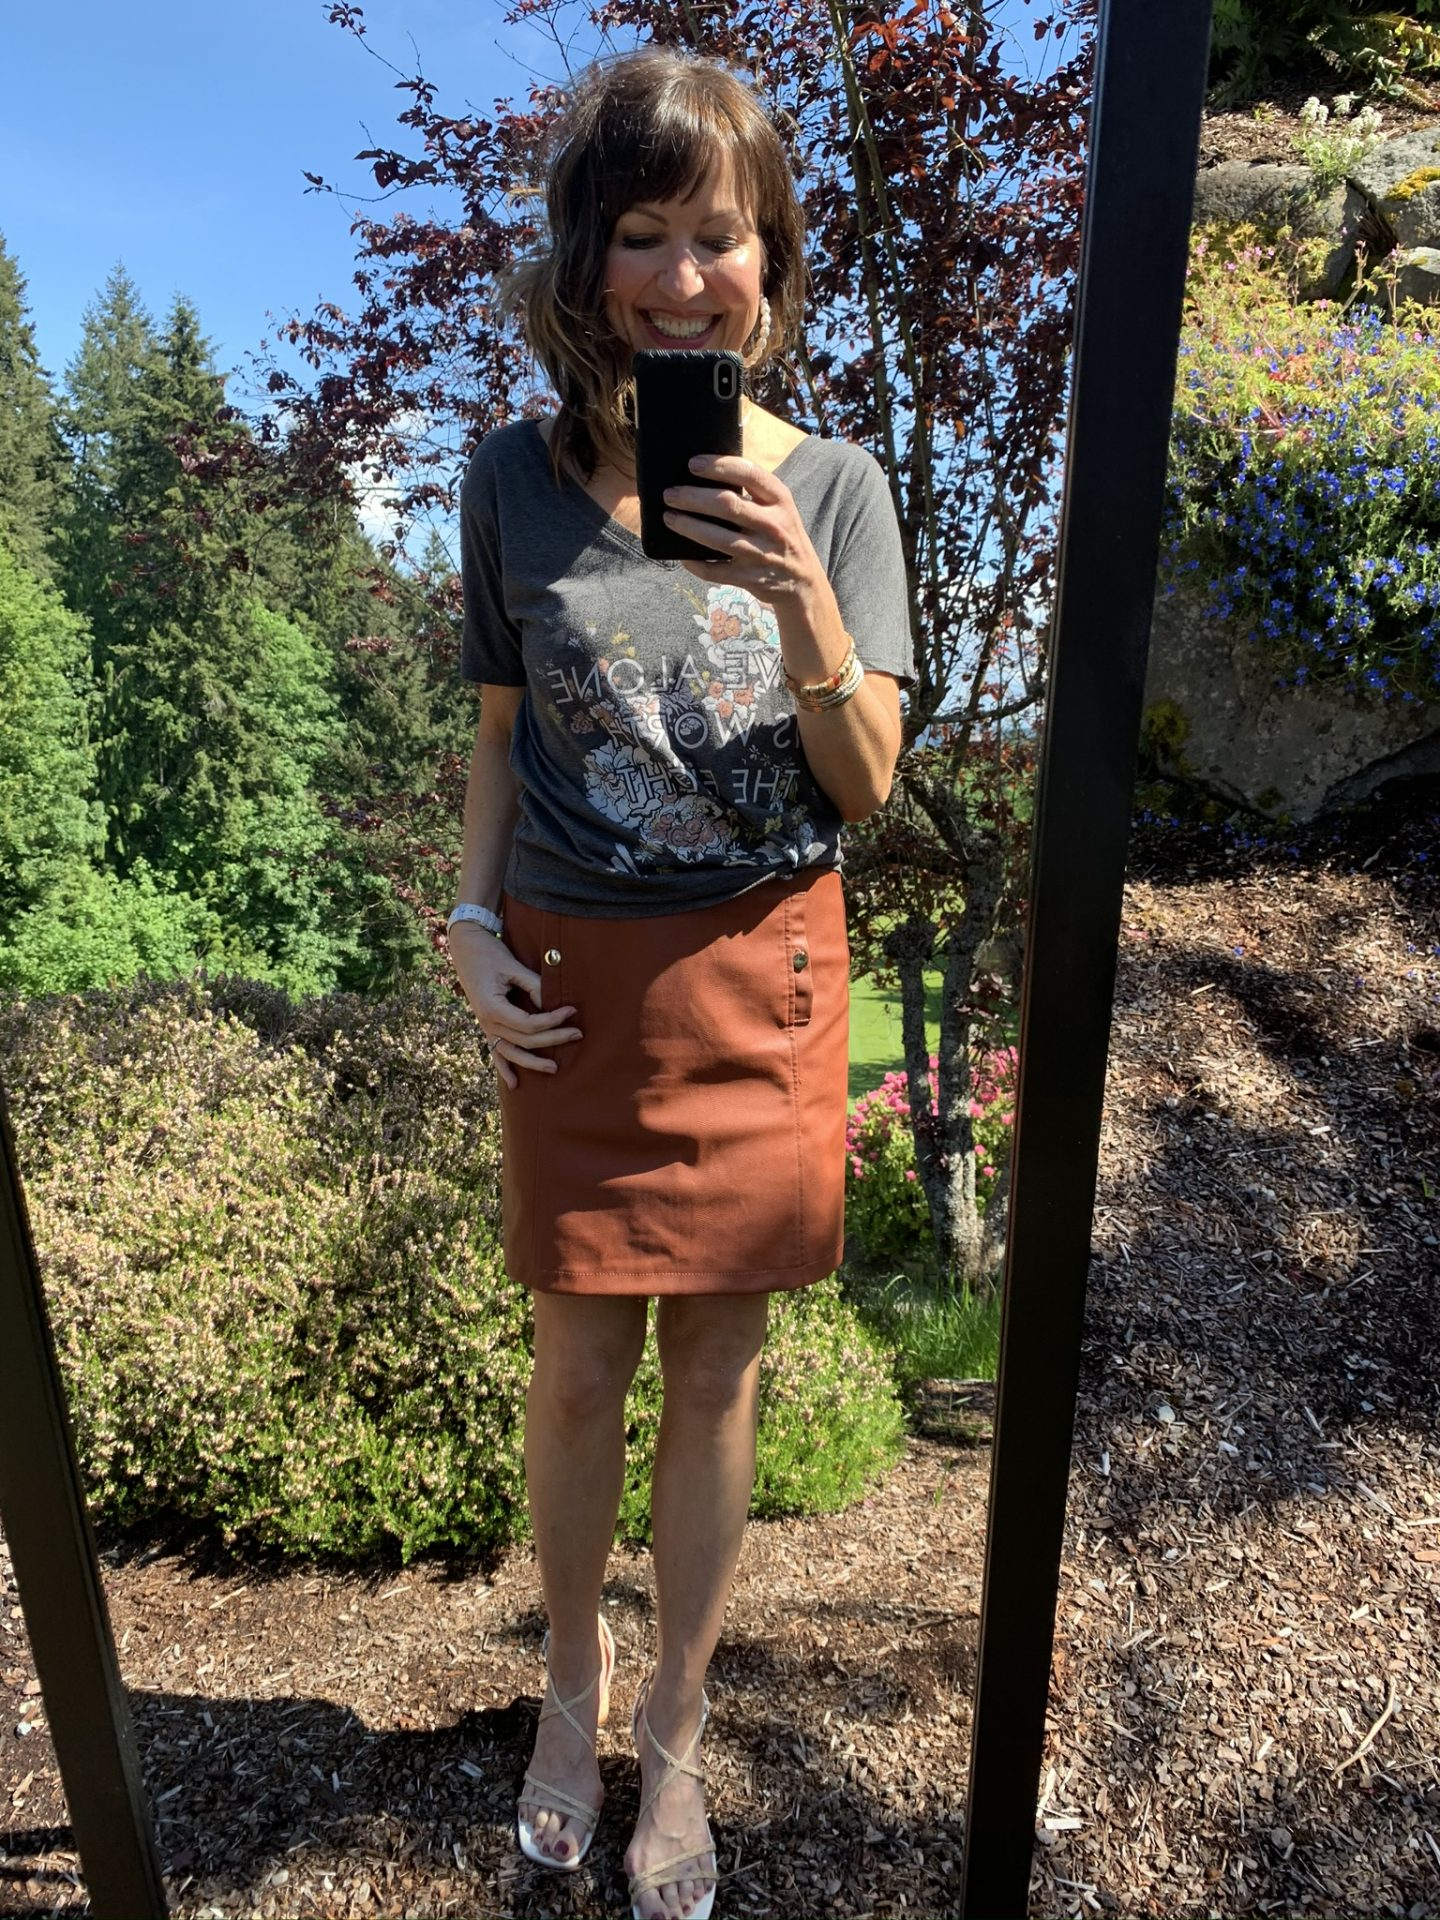 mirror selfie with switchfoot band graphic tee and rust faux leather miniskirt and heels